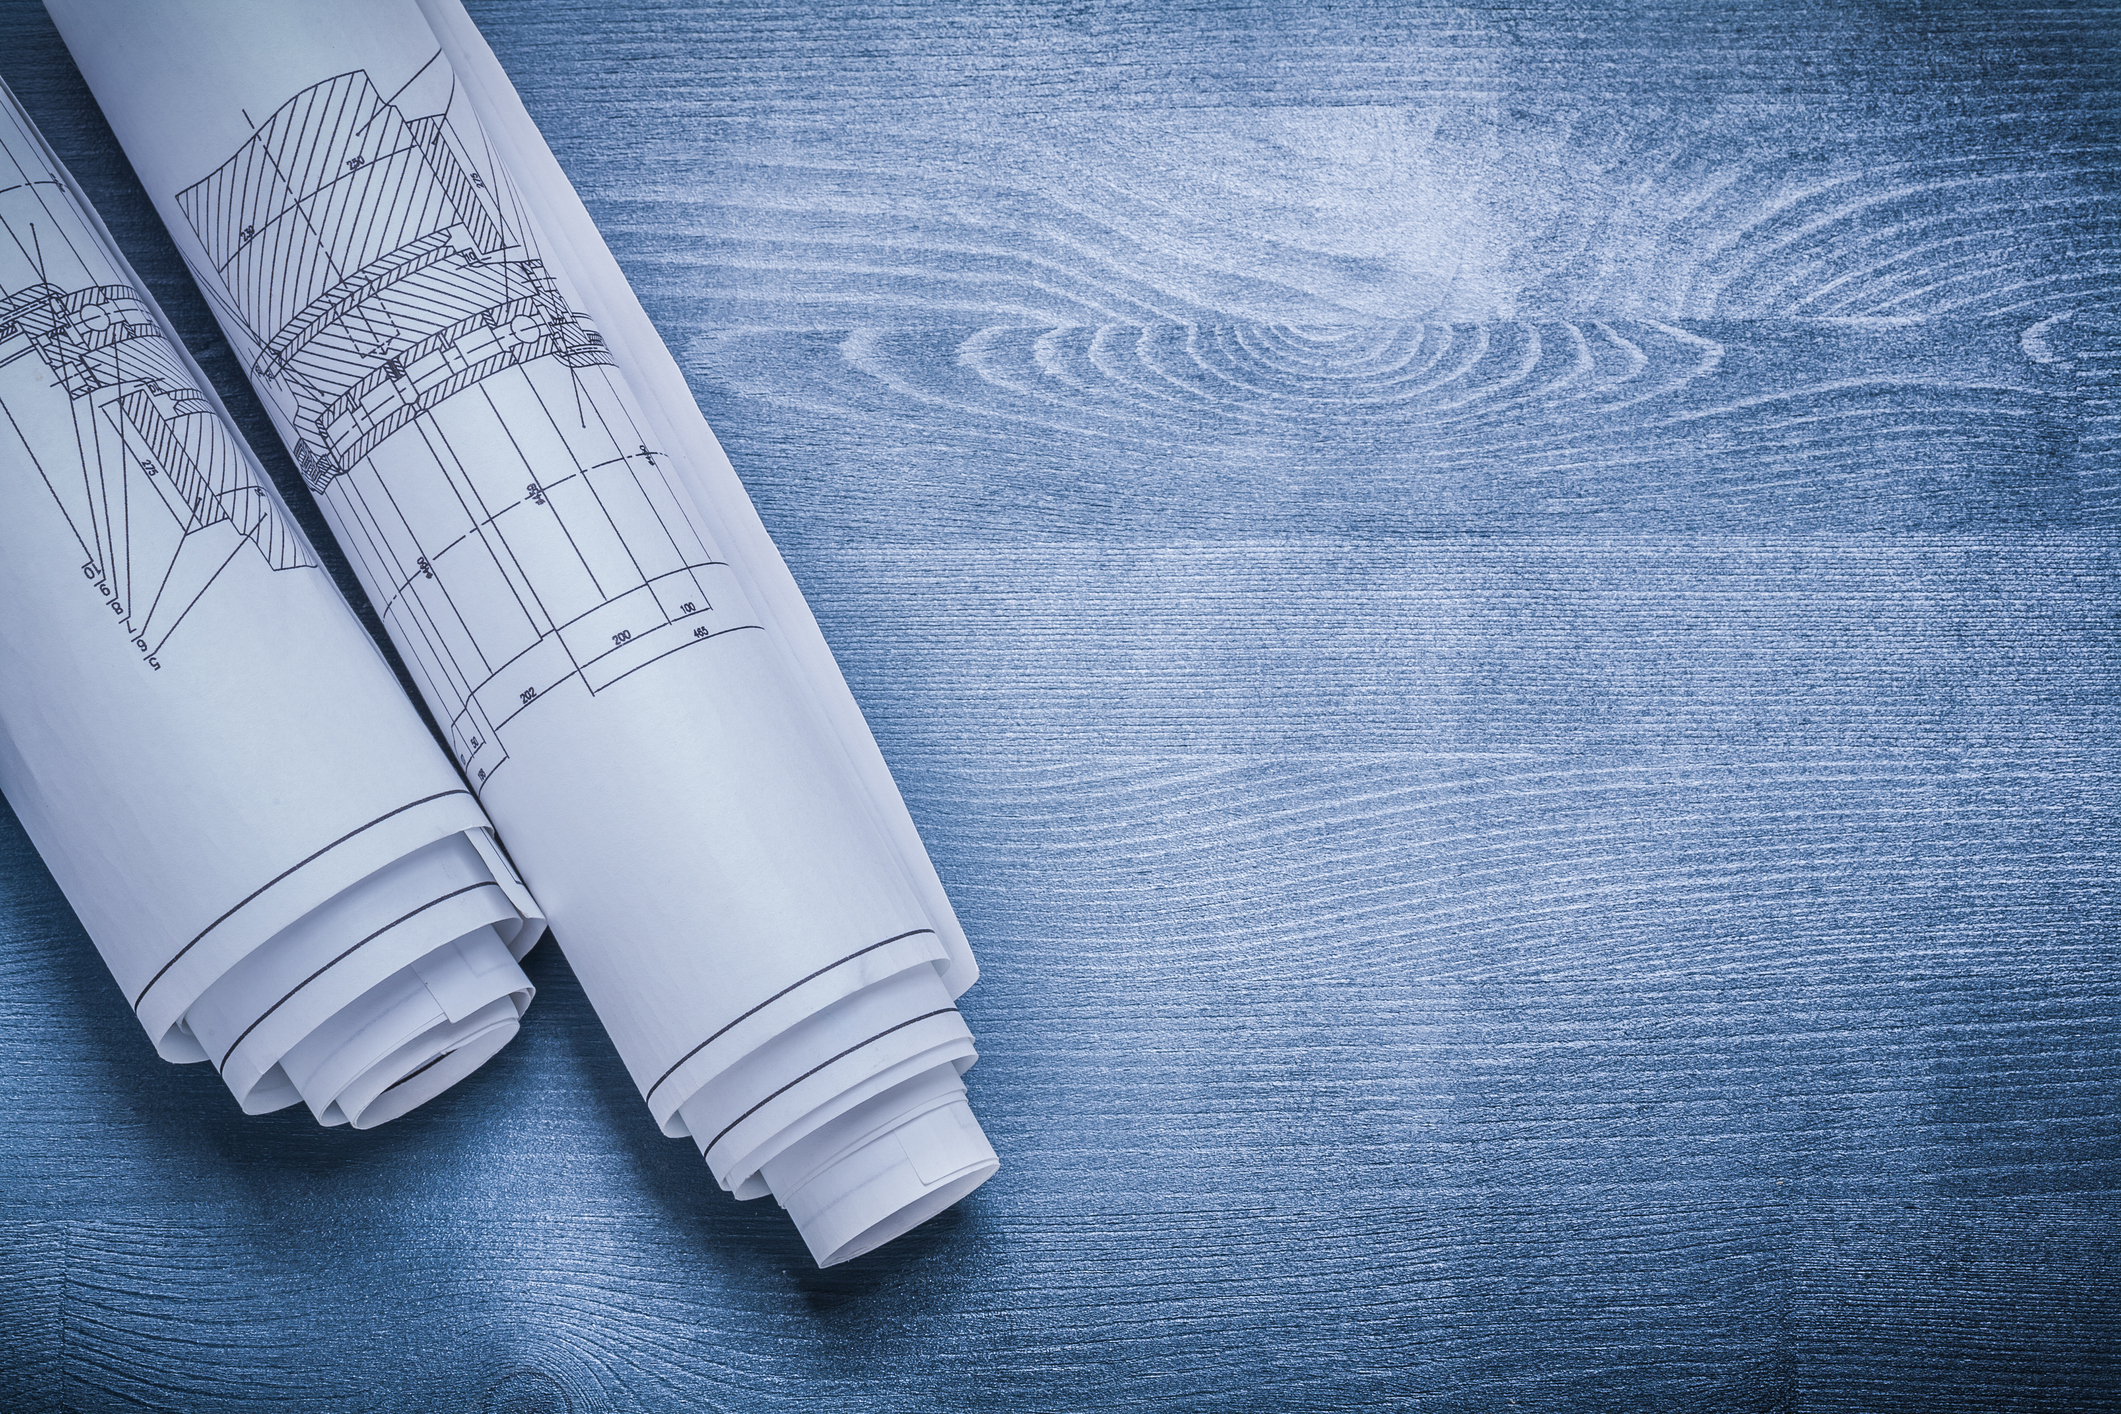 Design Development andConsulting Services - from concept to construction